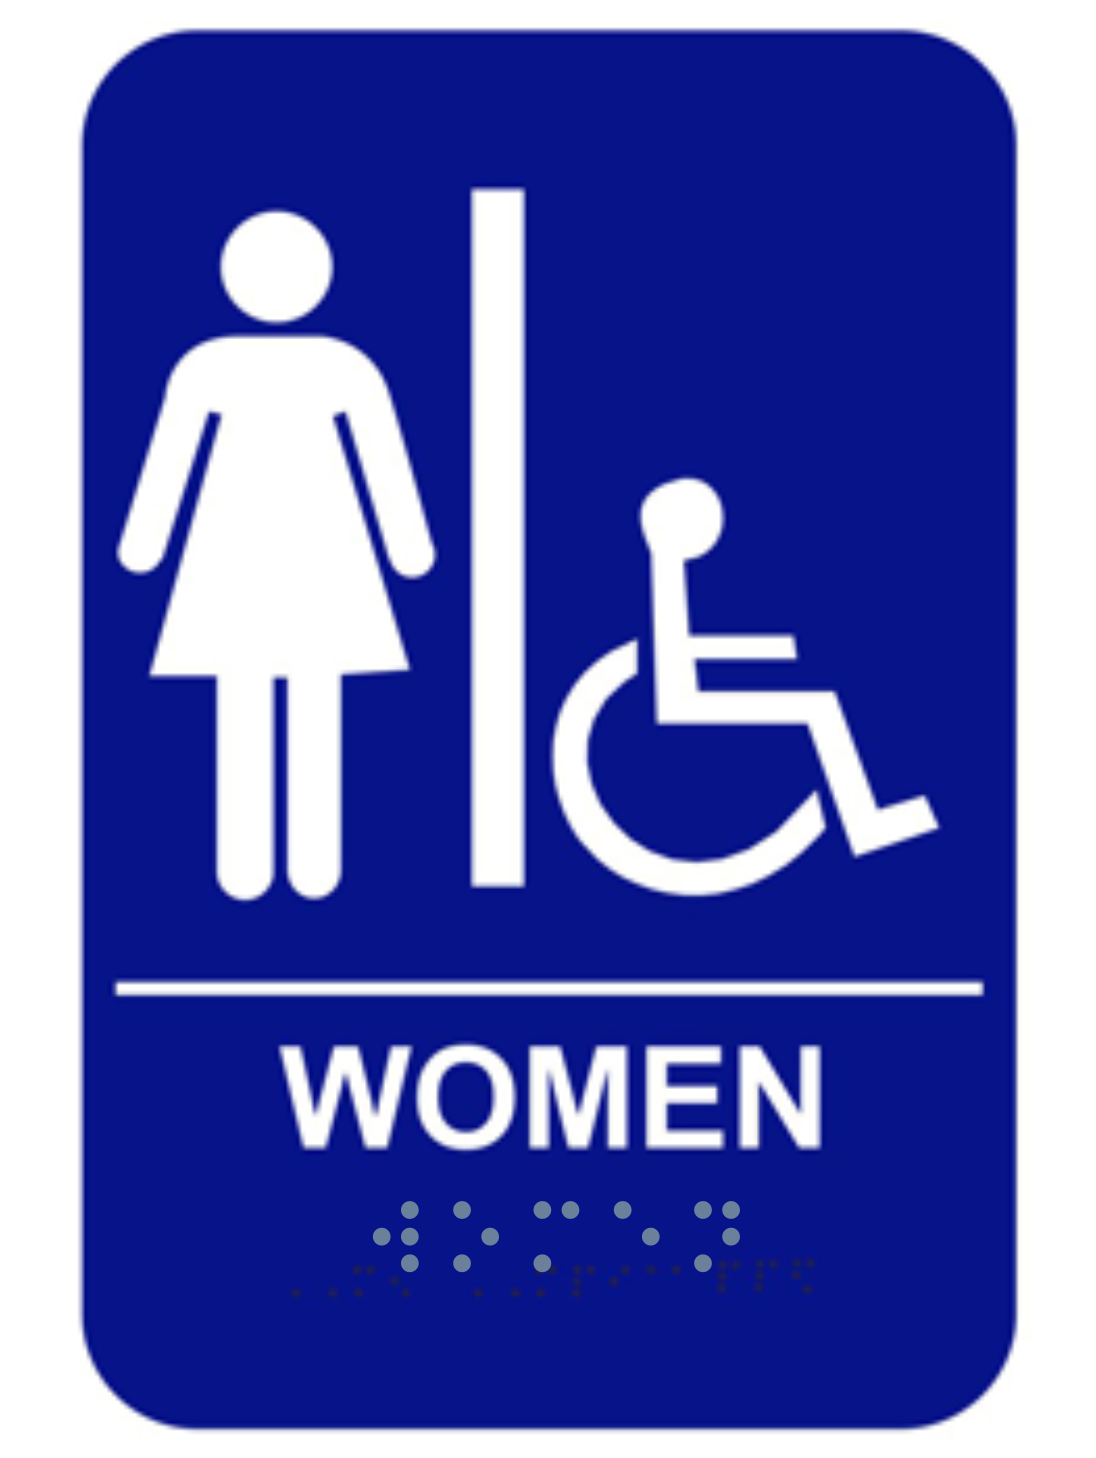 Bathroom Signs With Braille ada braille women's handicap restroom sign - custom signs